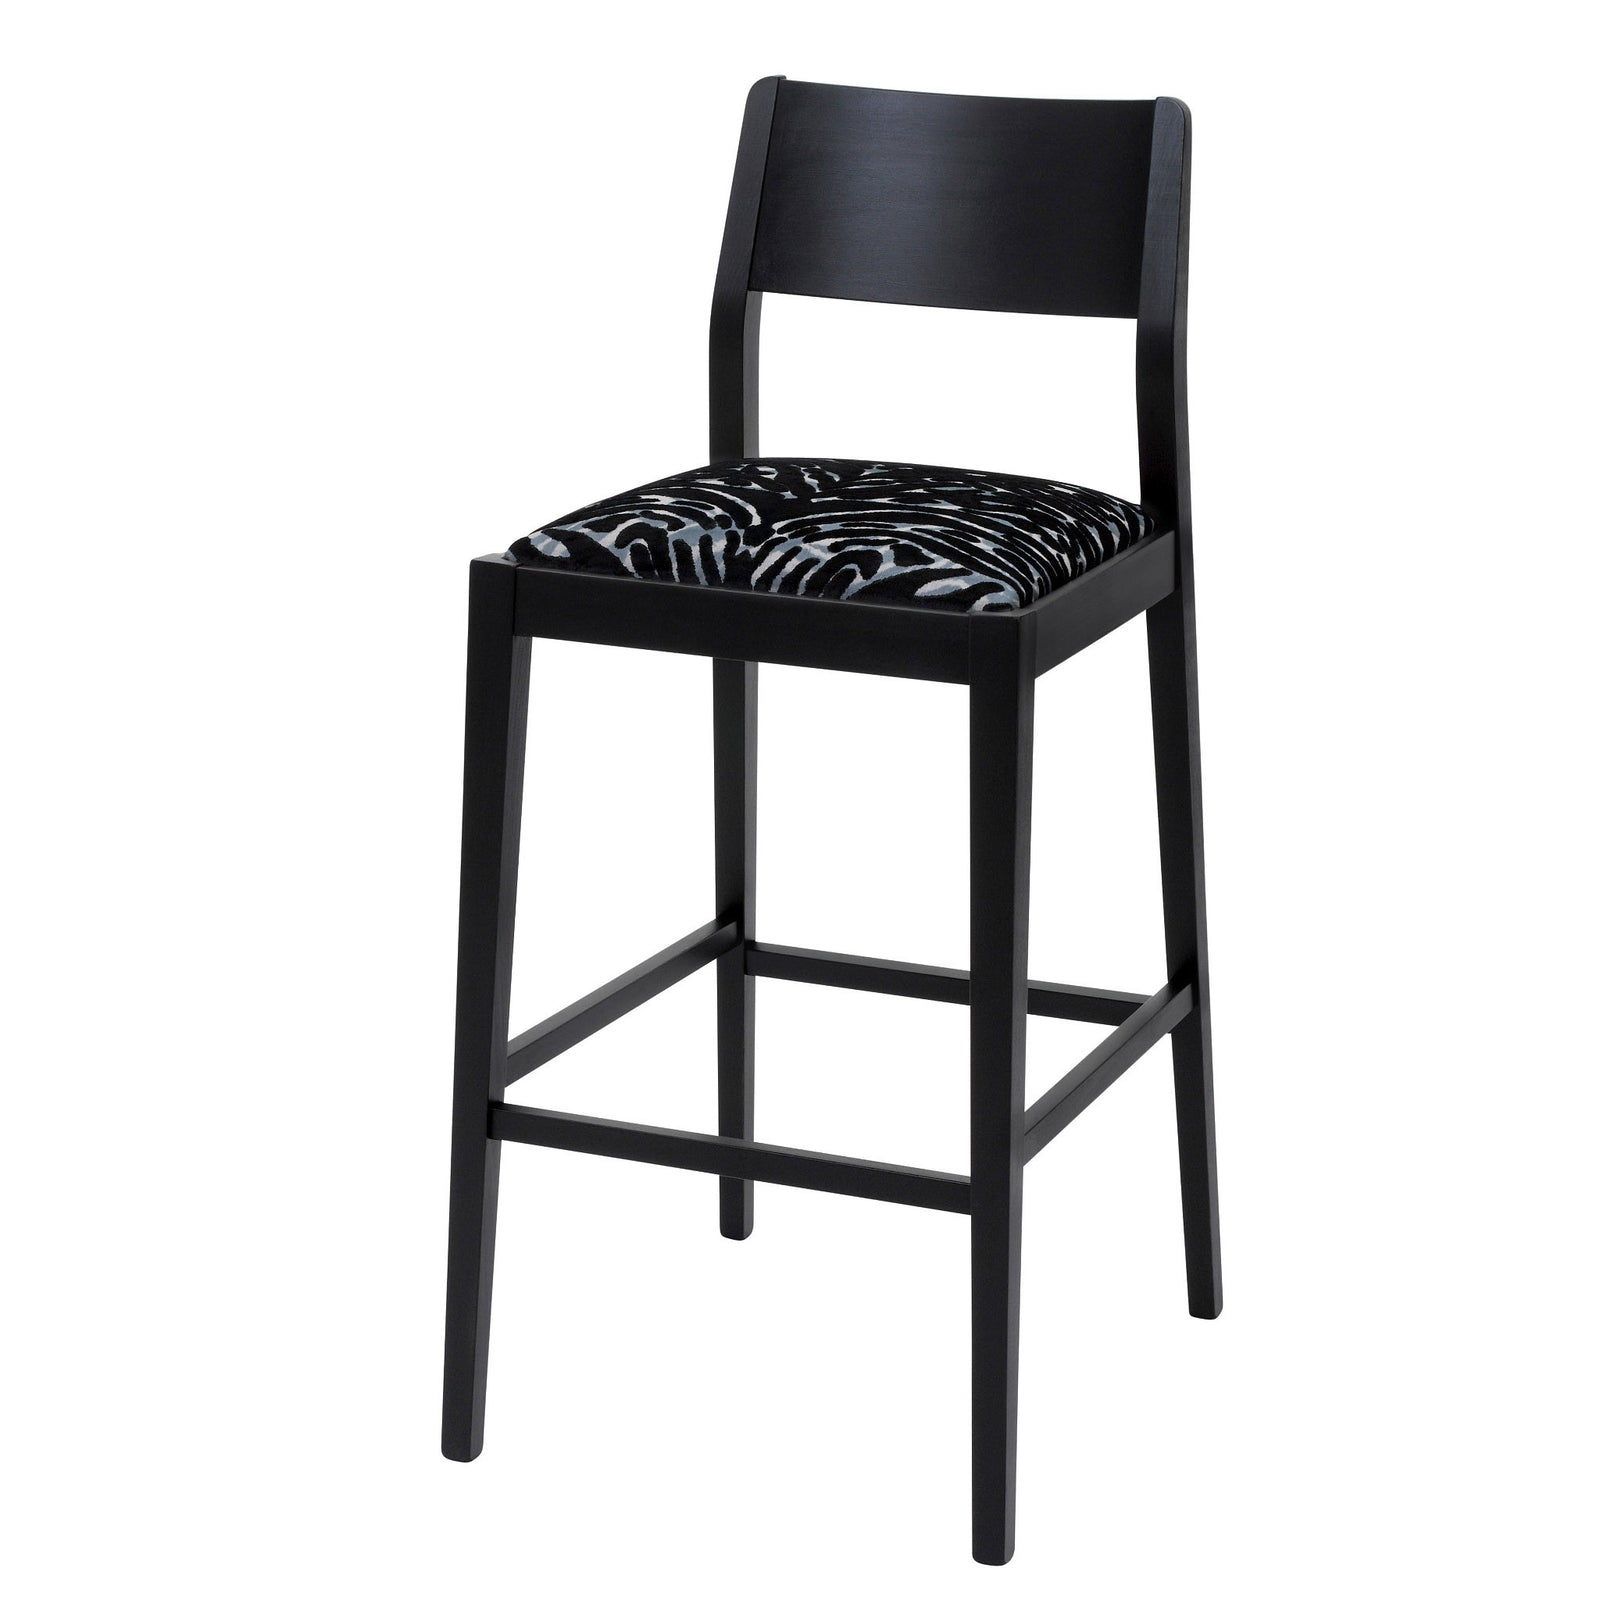 The James Bar Stool upholstered in Soft Pantigre Onyx finished in matte black.